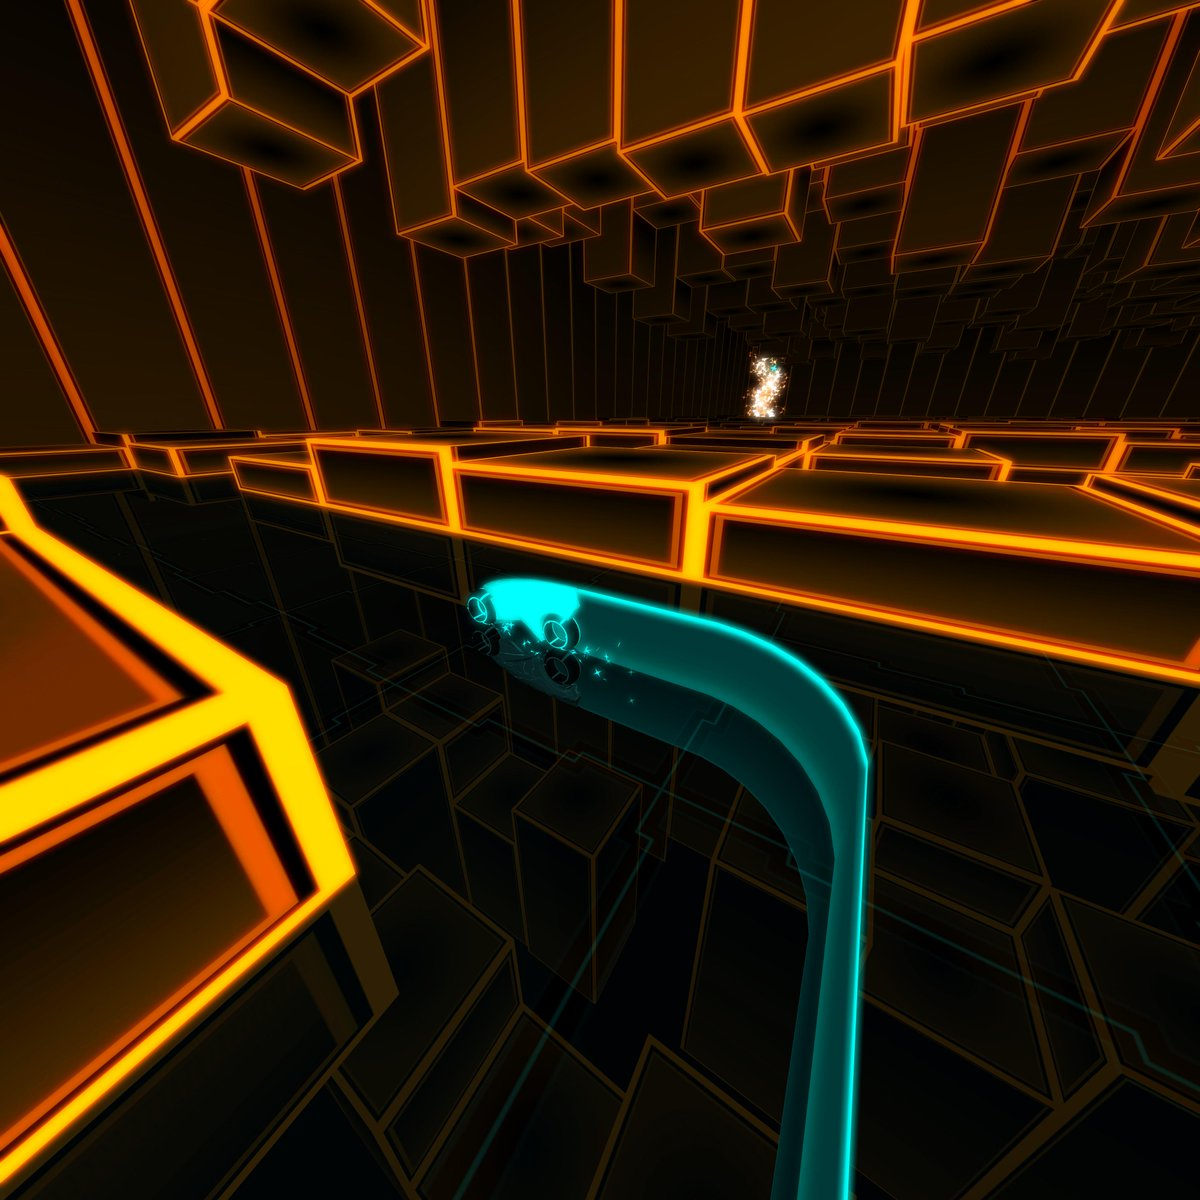 Working on @positrongame wall textures today. Need to fix a few long standing issues. #screenshotsaturday http://t.co/m9hLzbRsbm